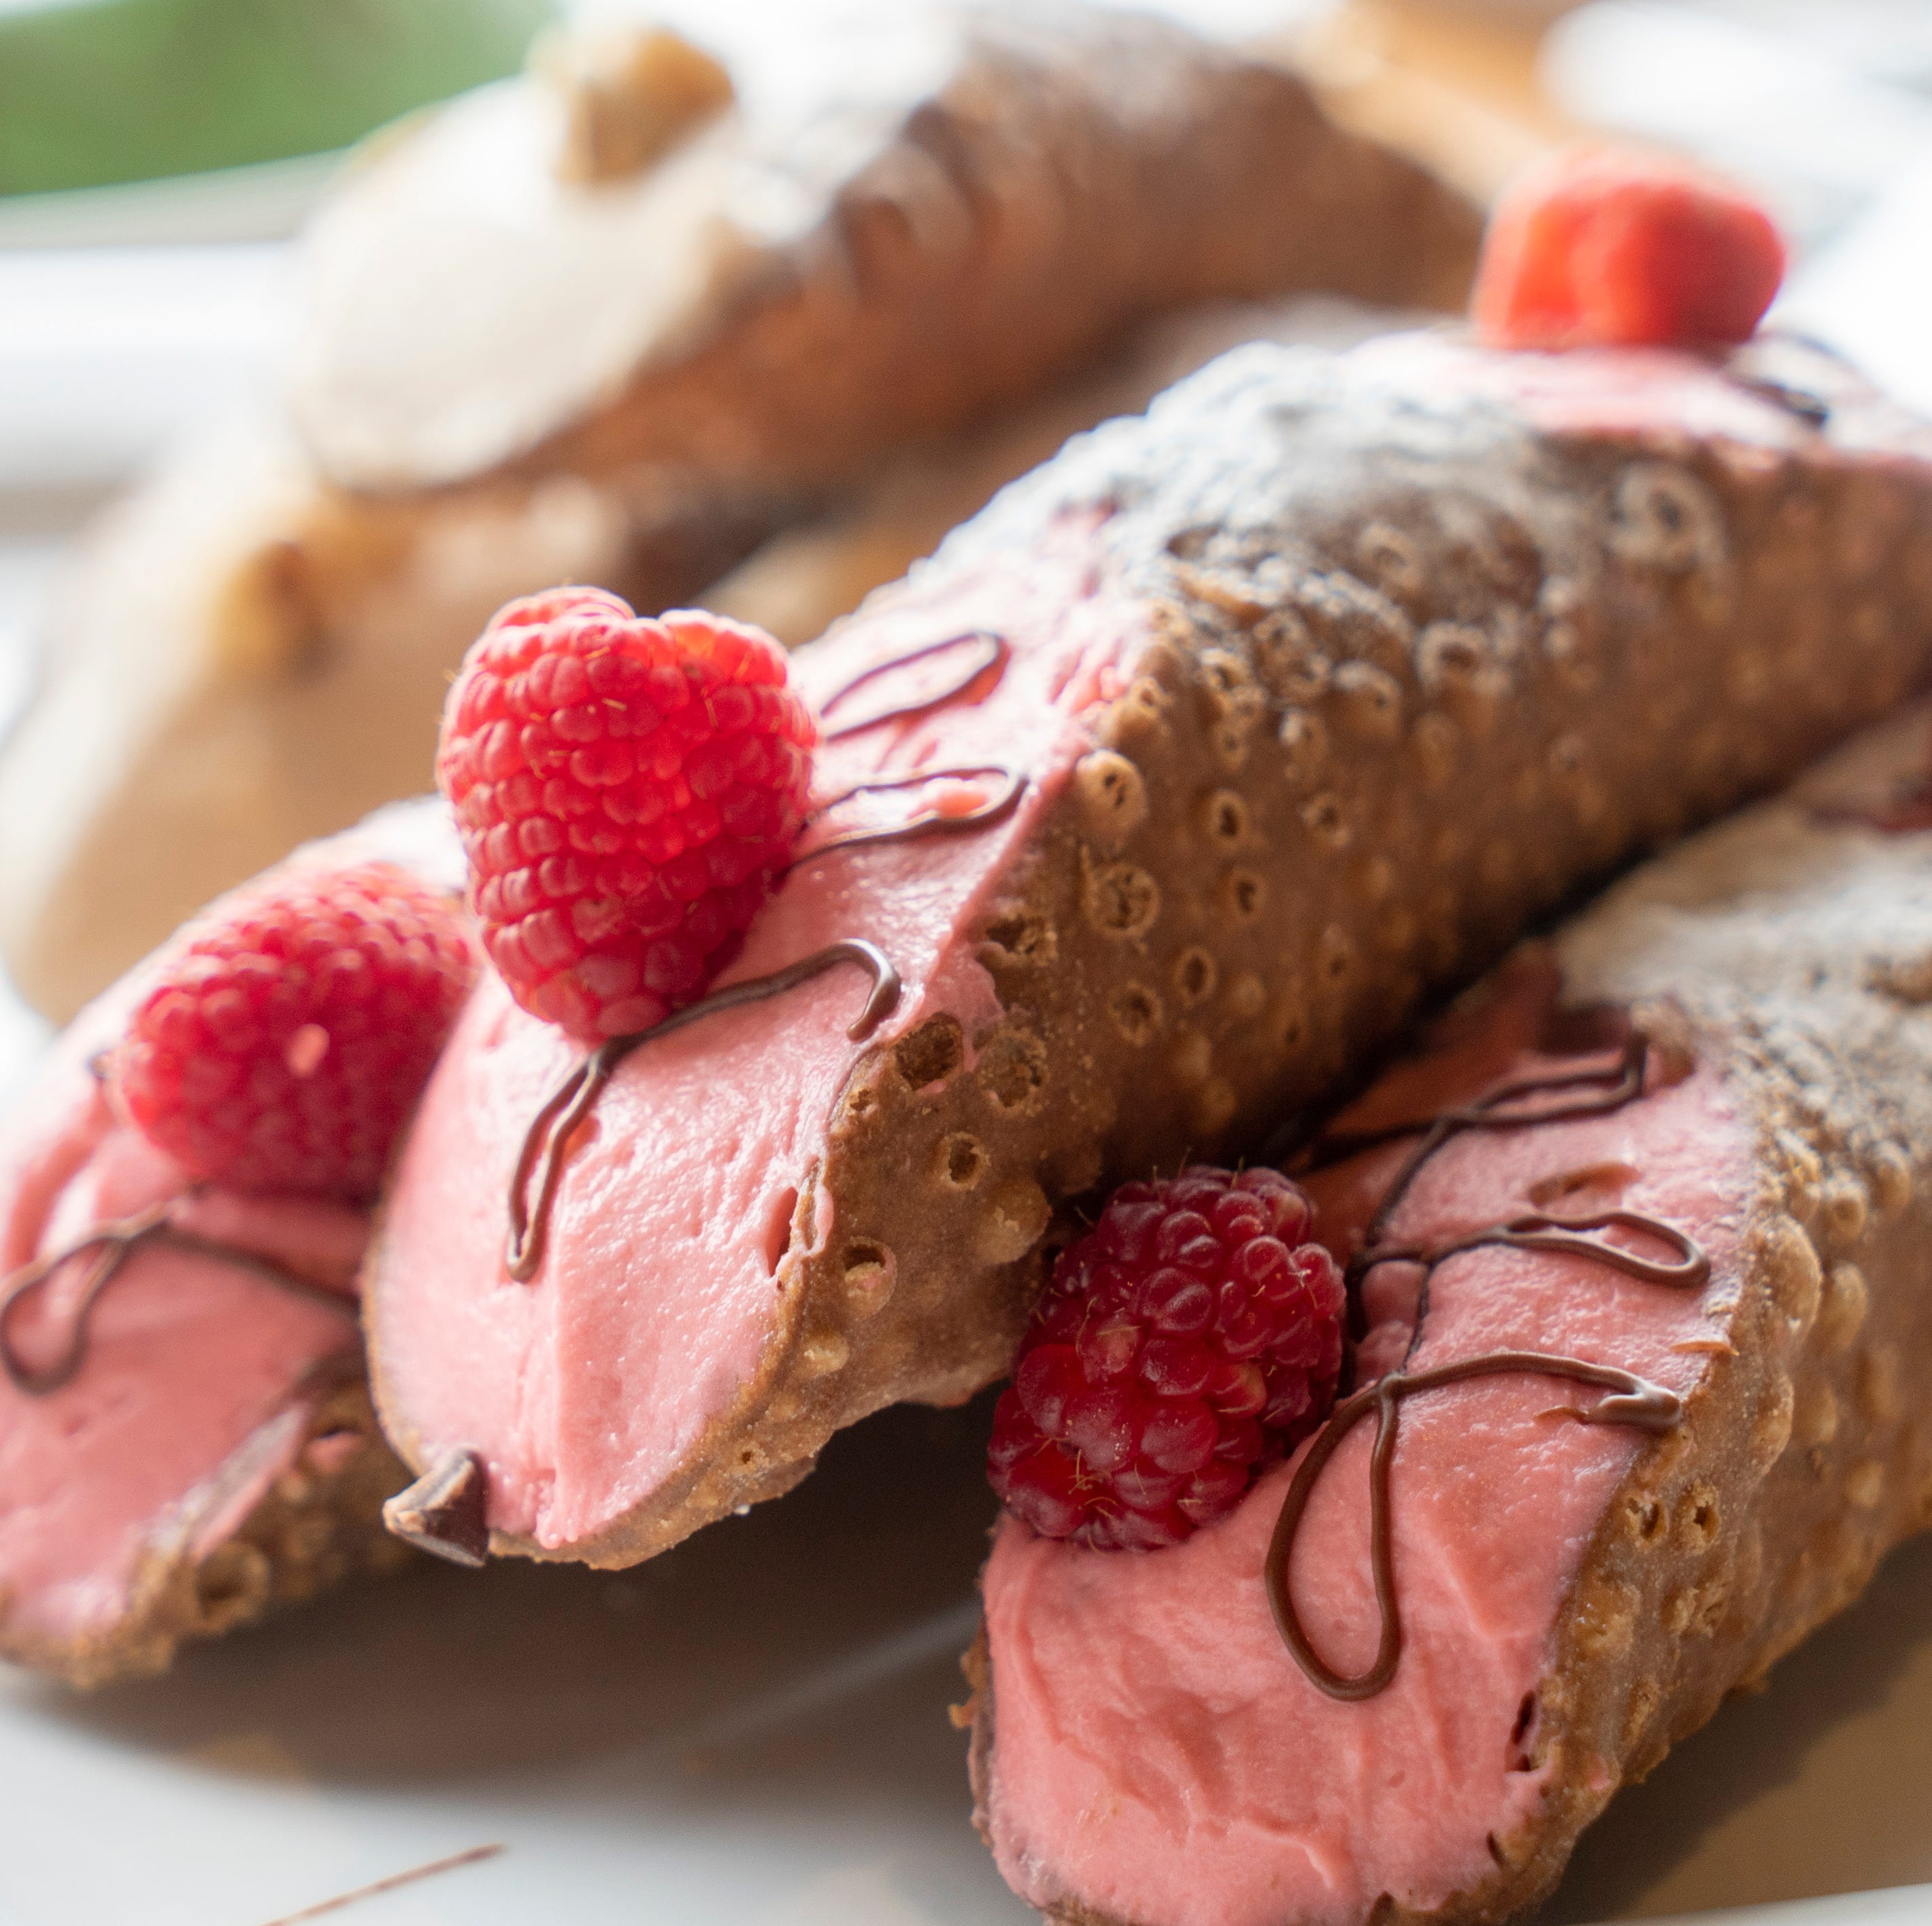 Sicilian Baker brings foot-long cannoli and fresh pasta to northeast Phoenix